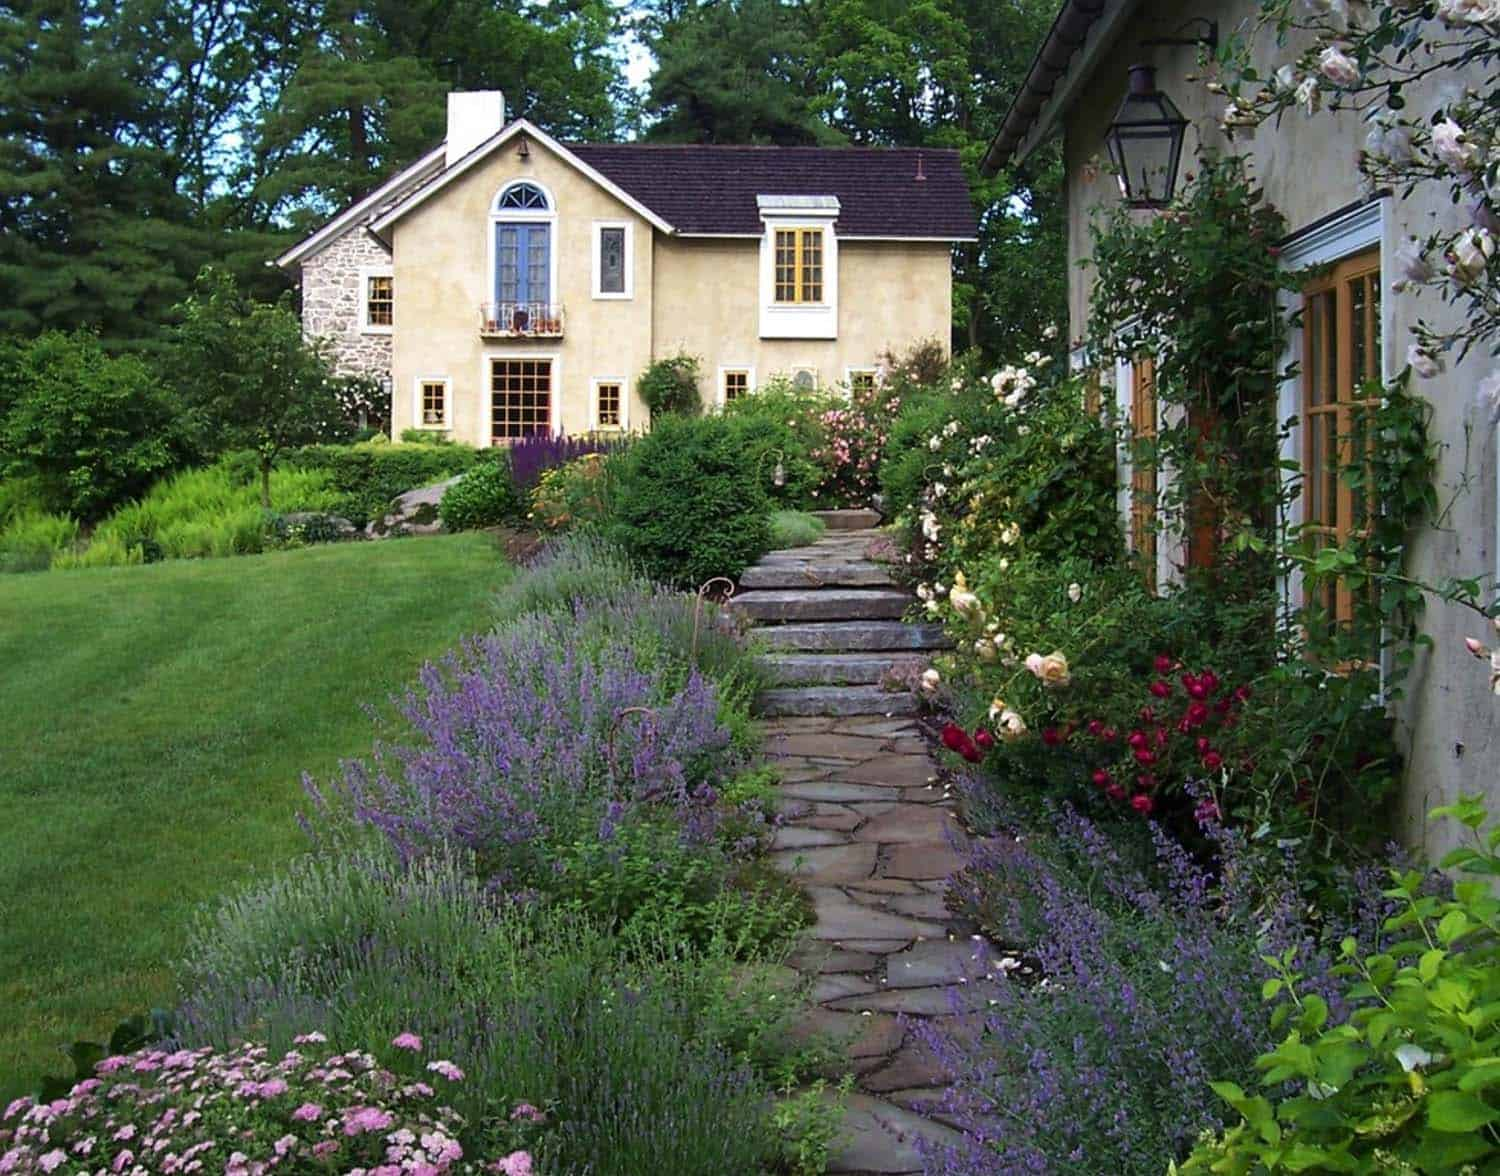 Garden Stone Pathway Ideas-31-1 Kindesign